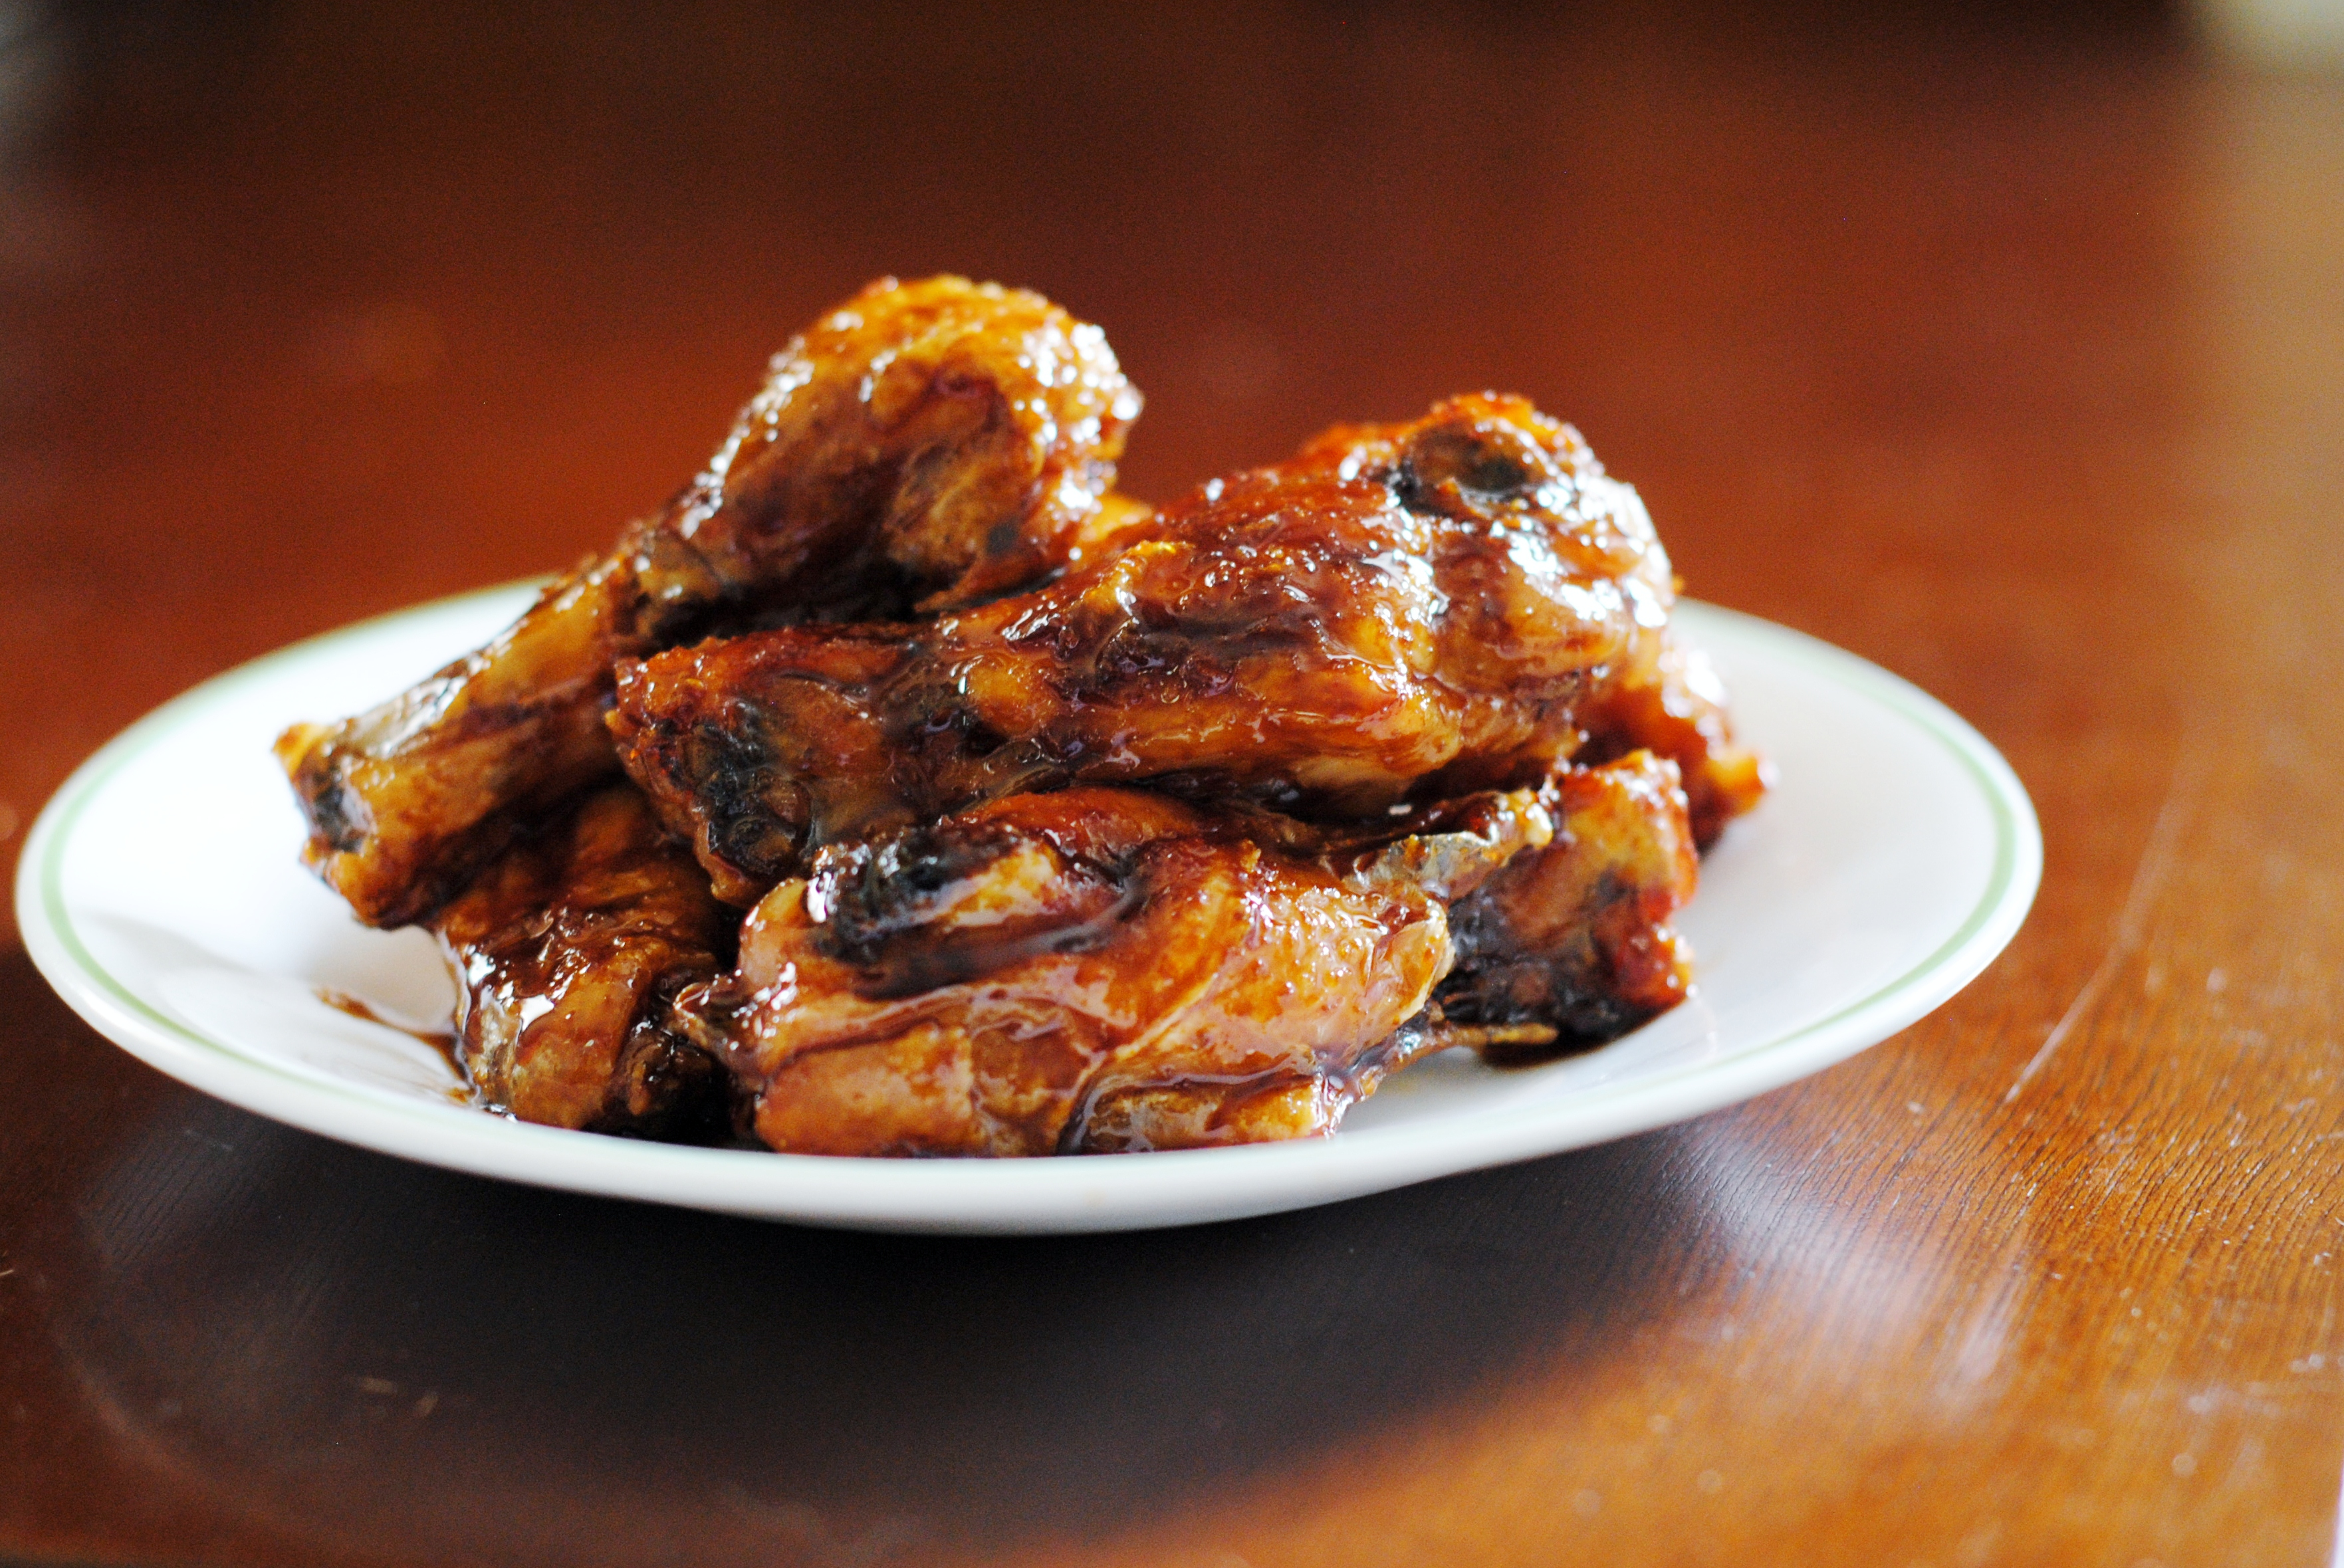 ... glazed chicken wings for the chicken orange ginger chicken wings